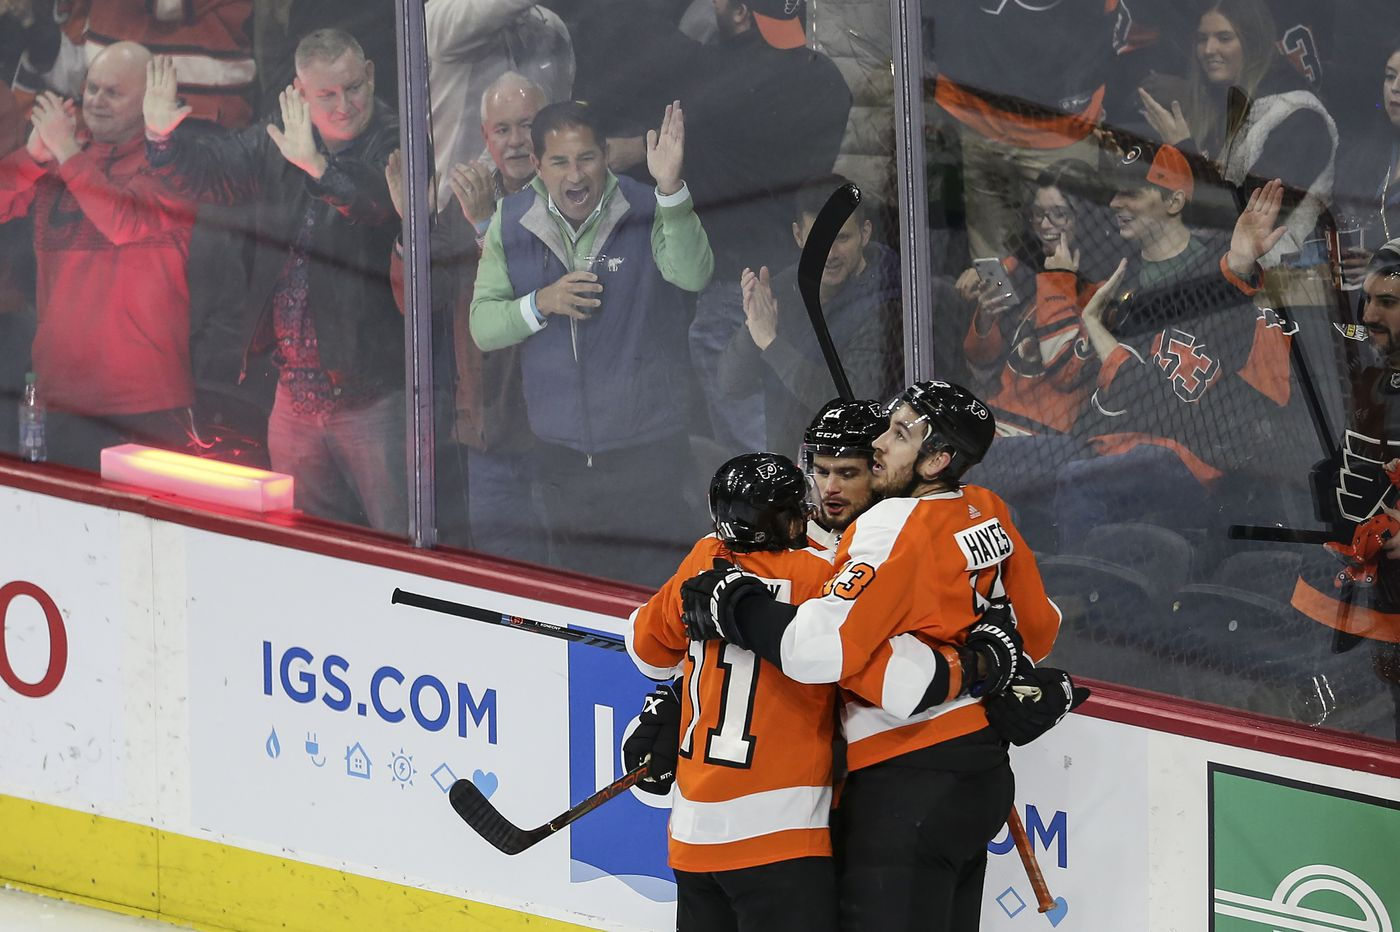 The Flyers' success this season was merely a matter of time | Mike Sielski